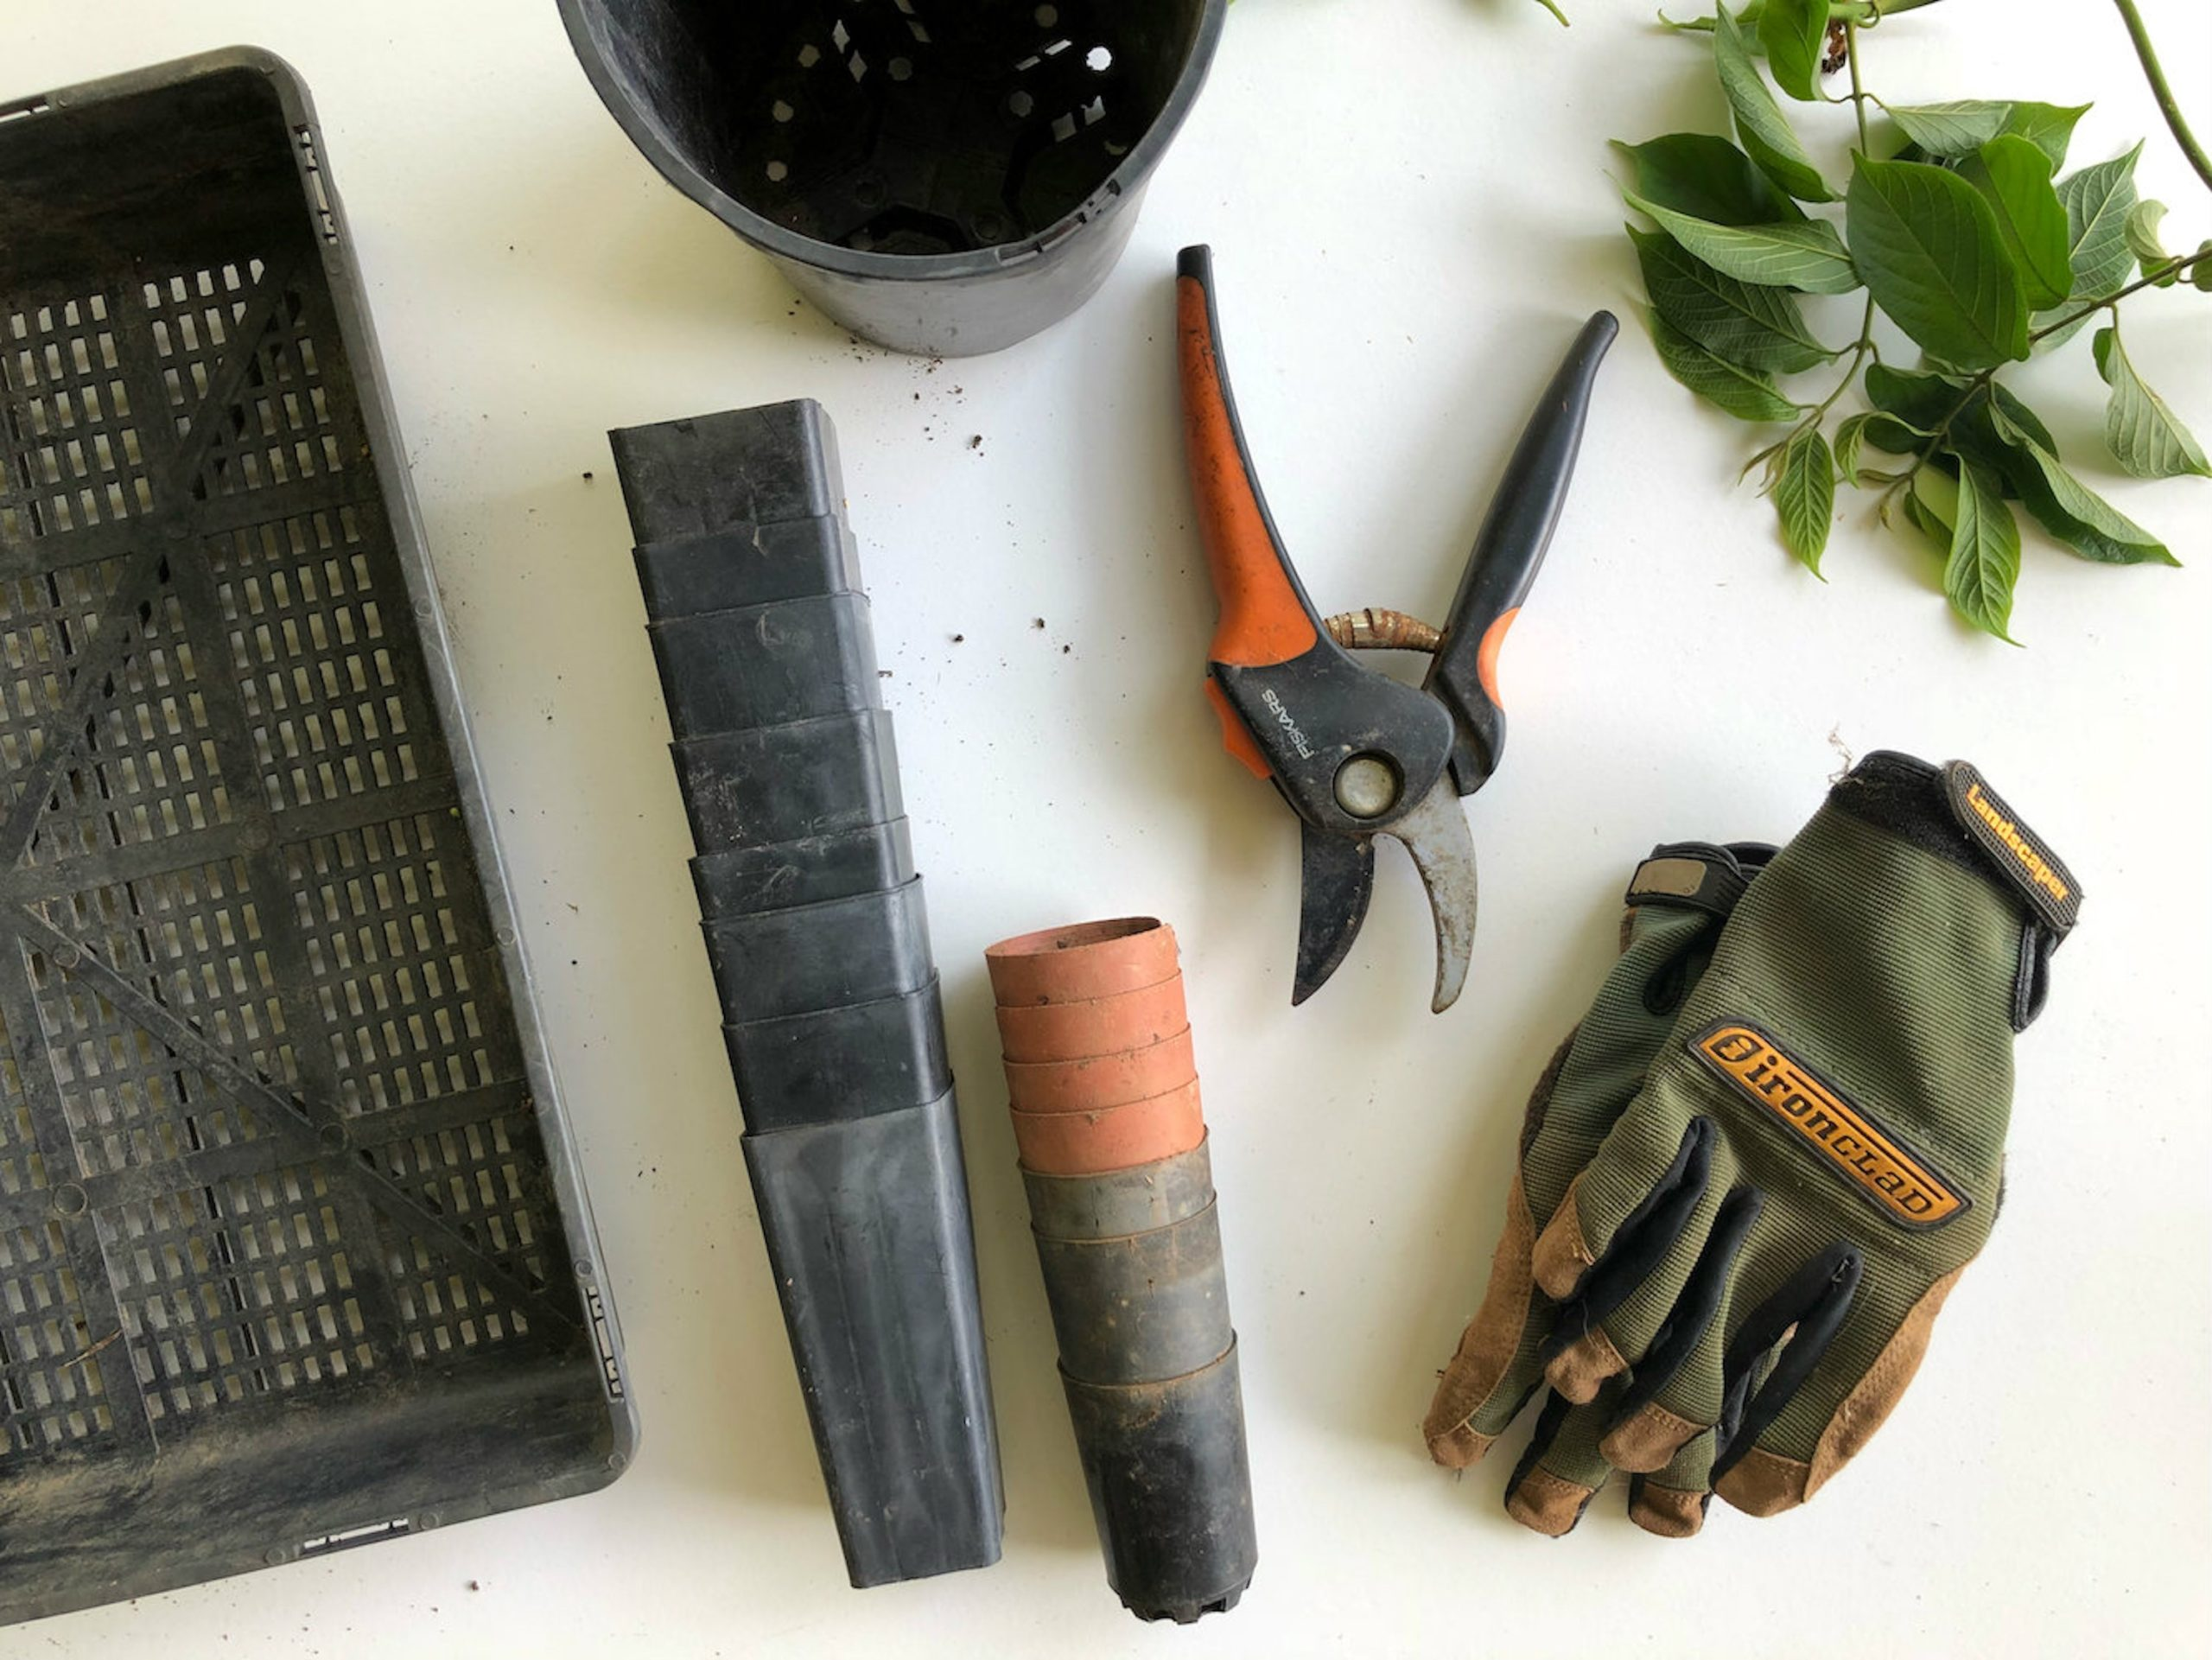 garden-and-hedge-cutting-tools-scaled